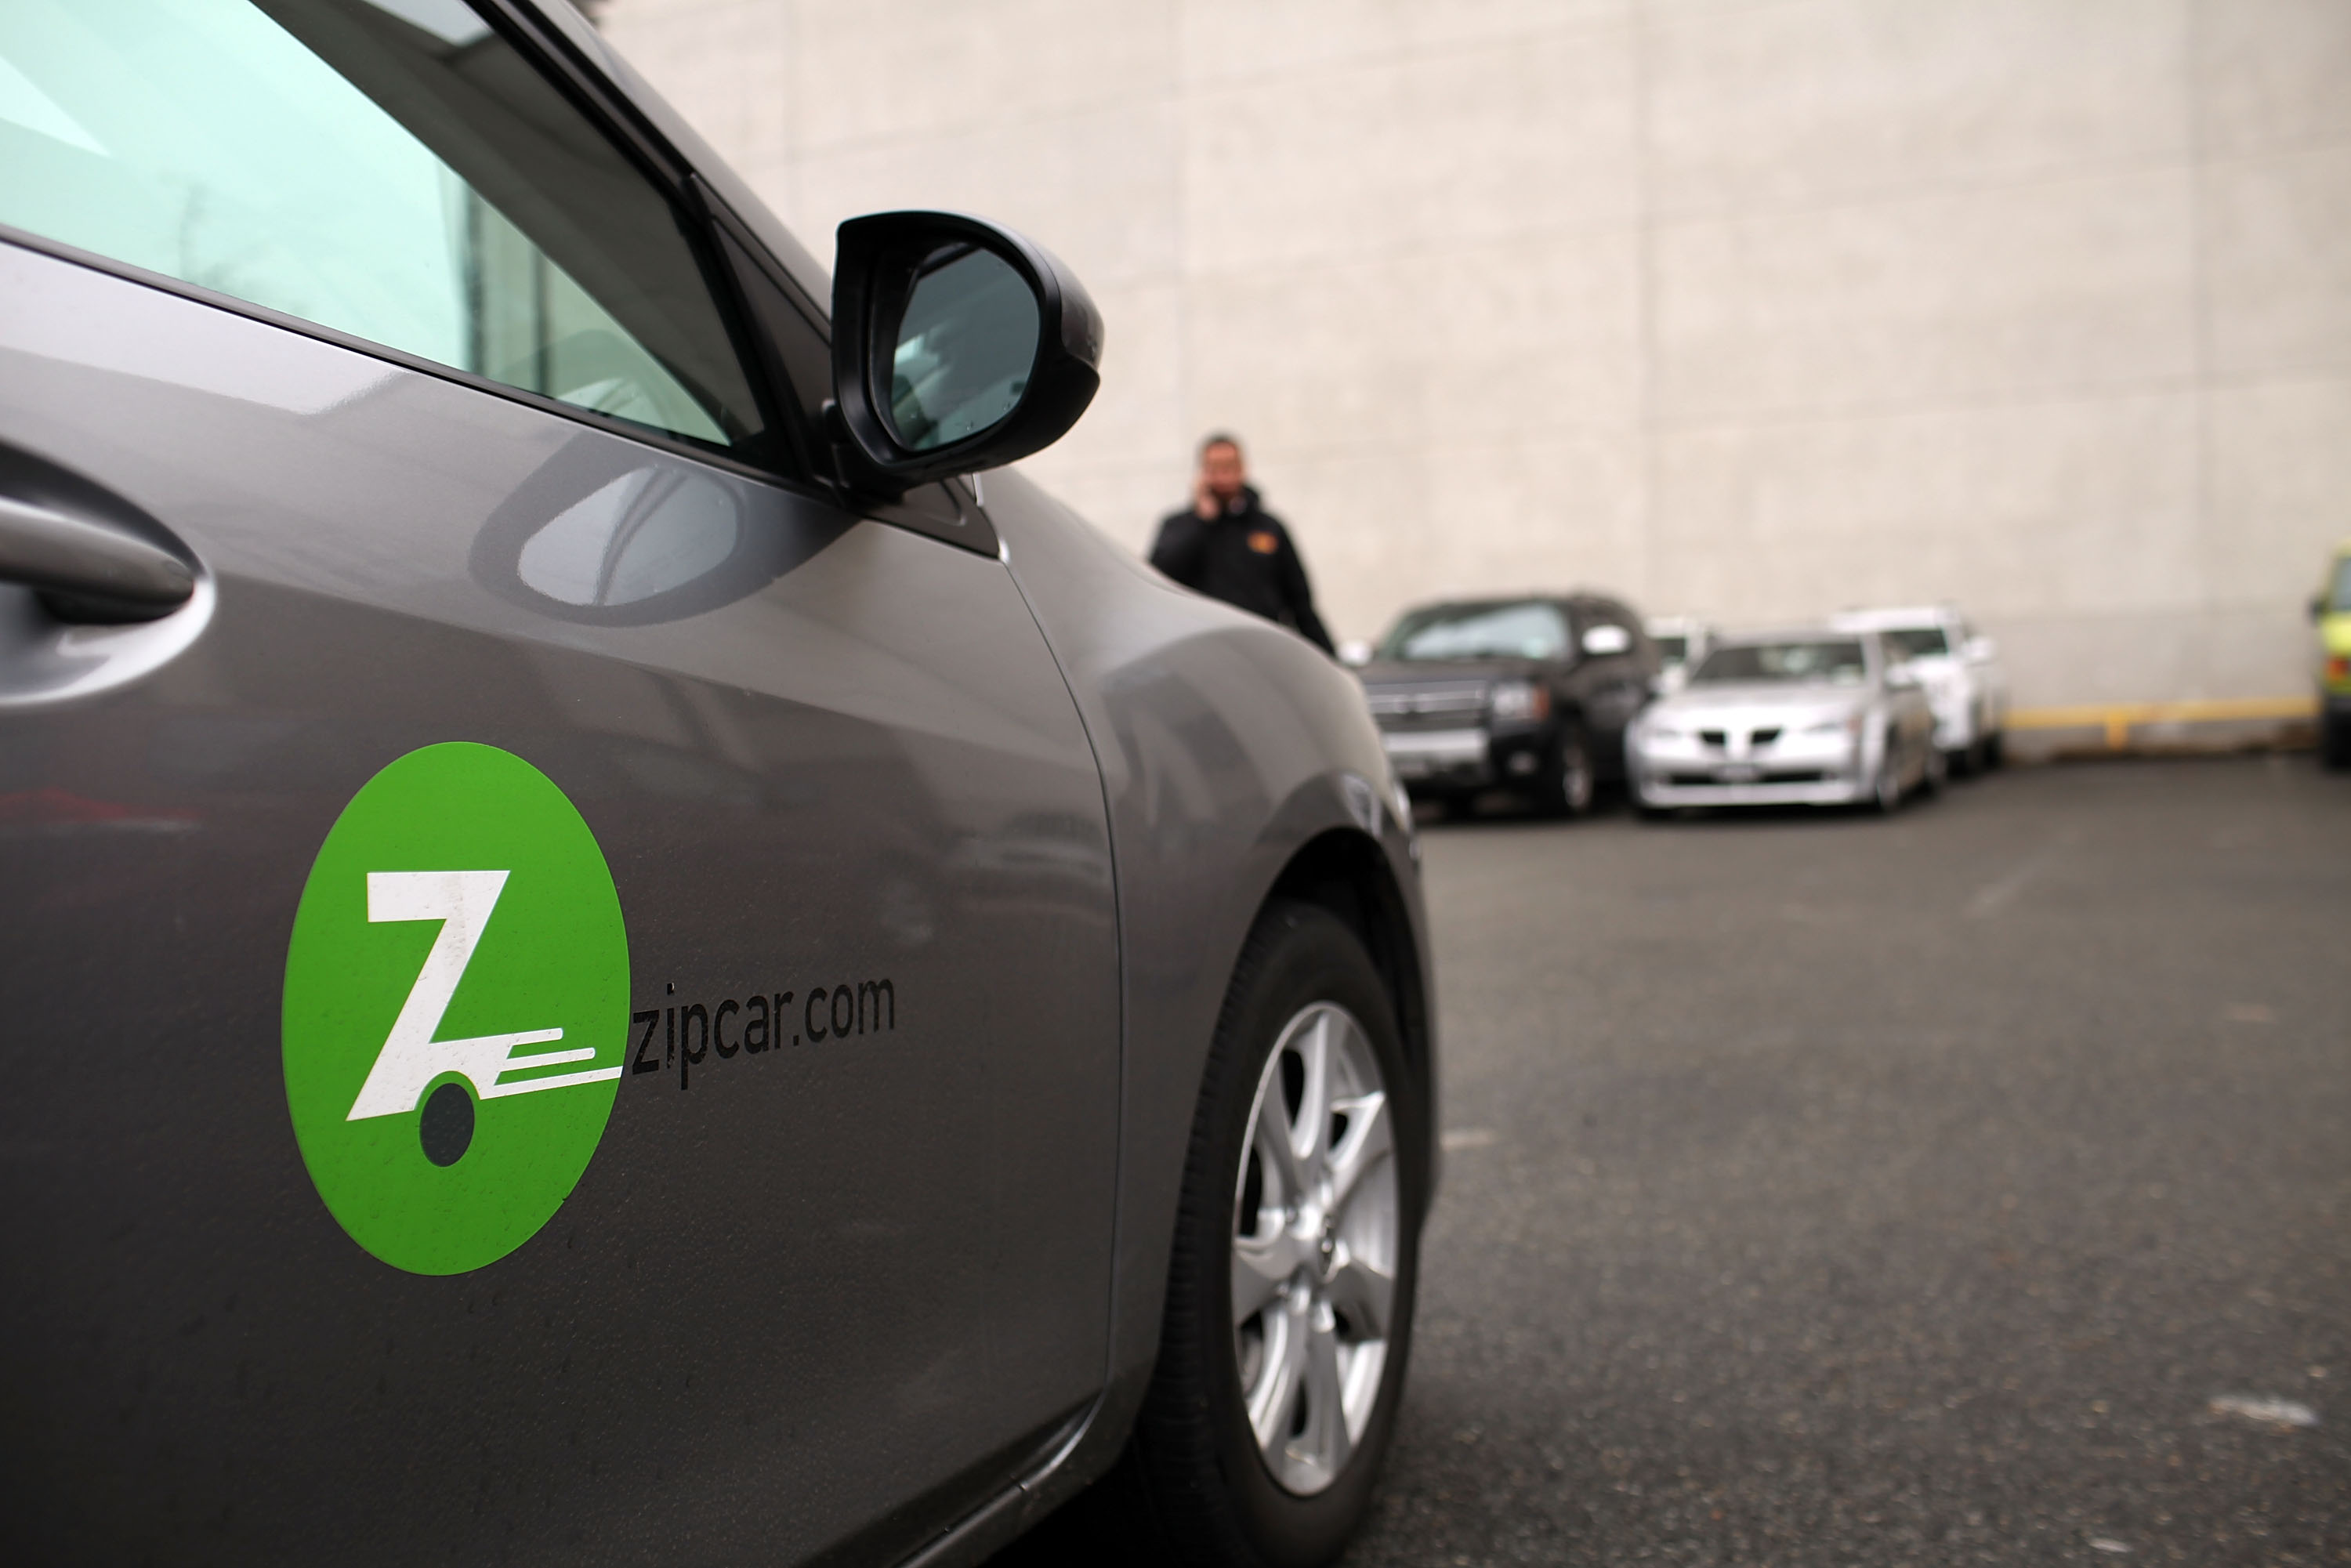 Zipcar goes one-way in Washington, Baltimore